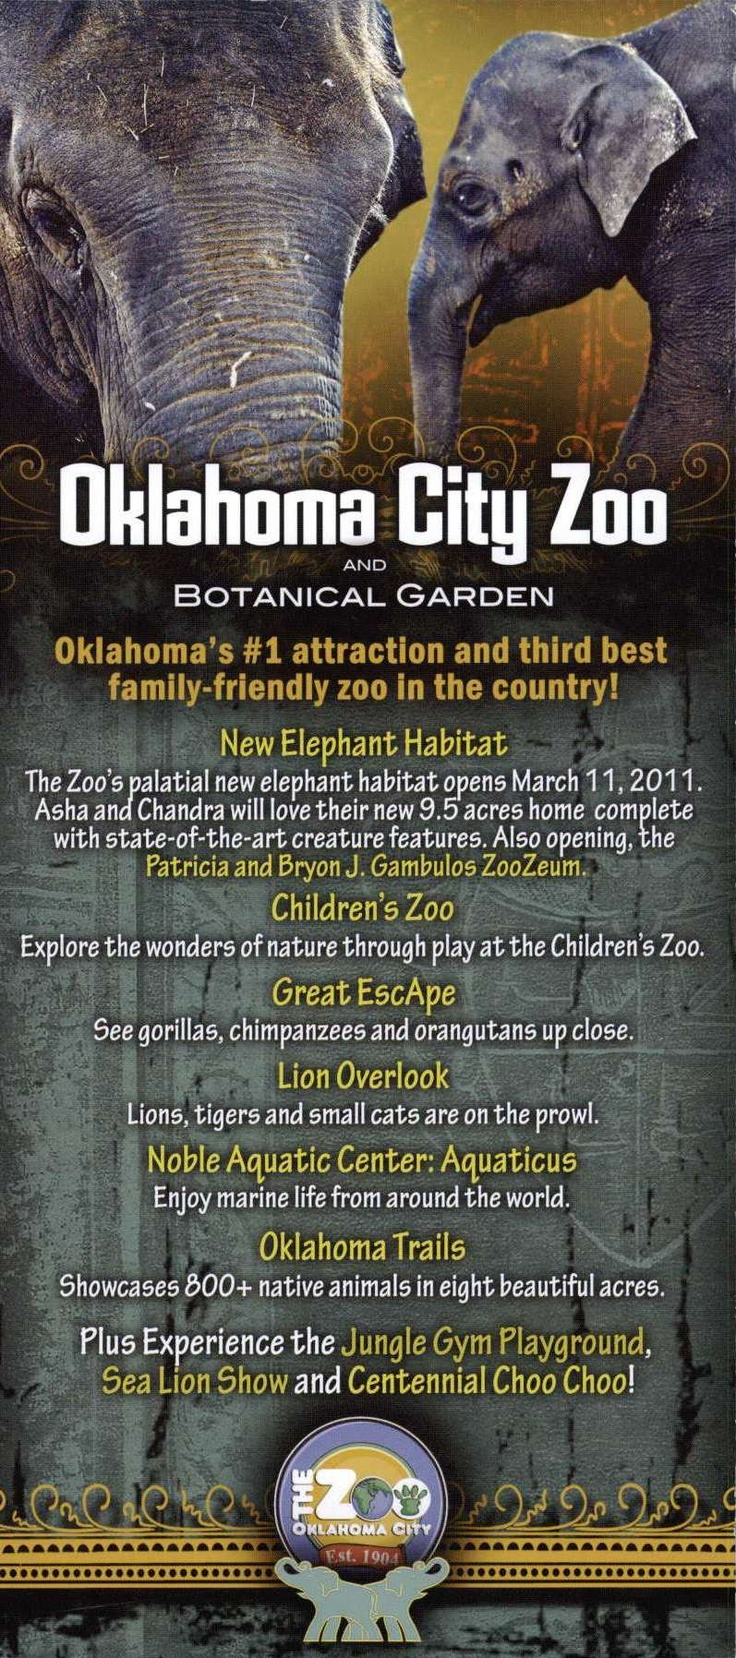 kansas city zoo open memorial day